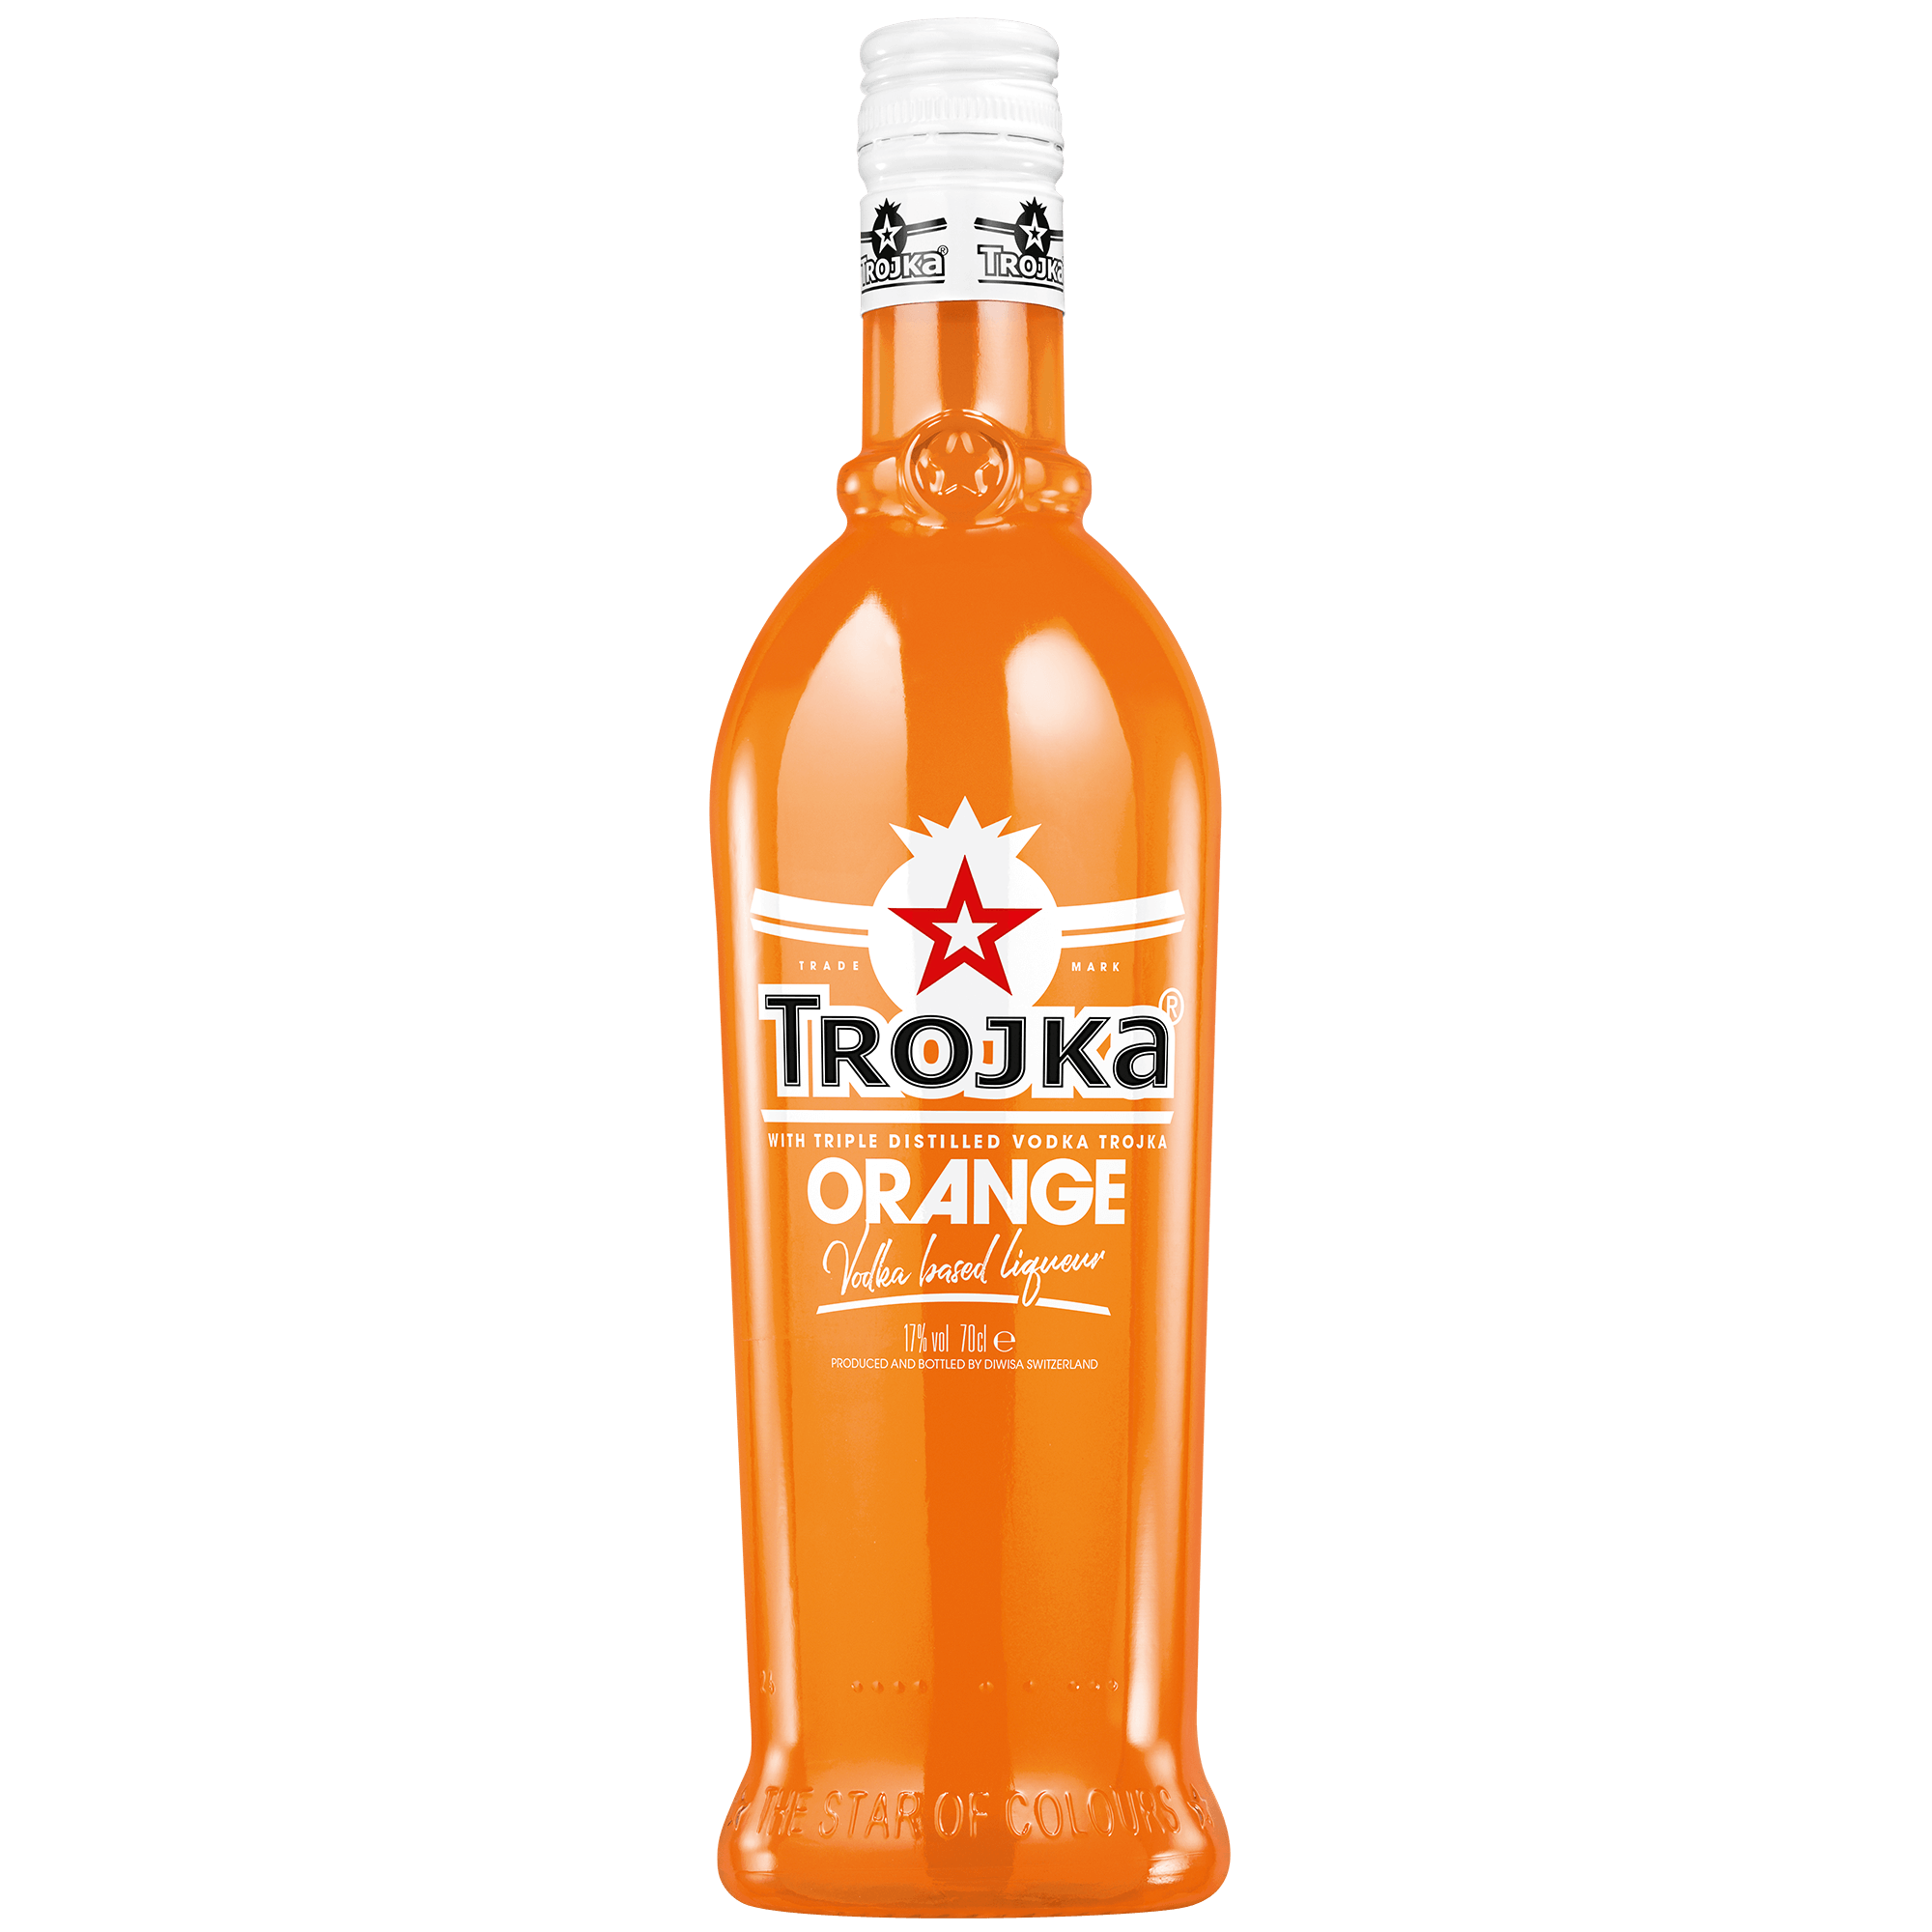 Trojka Vodka Orange 0,7l